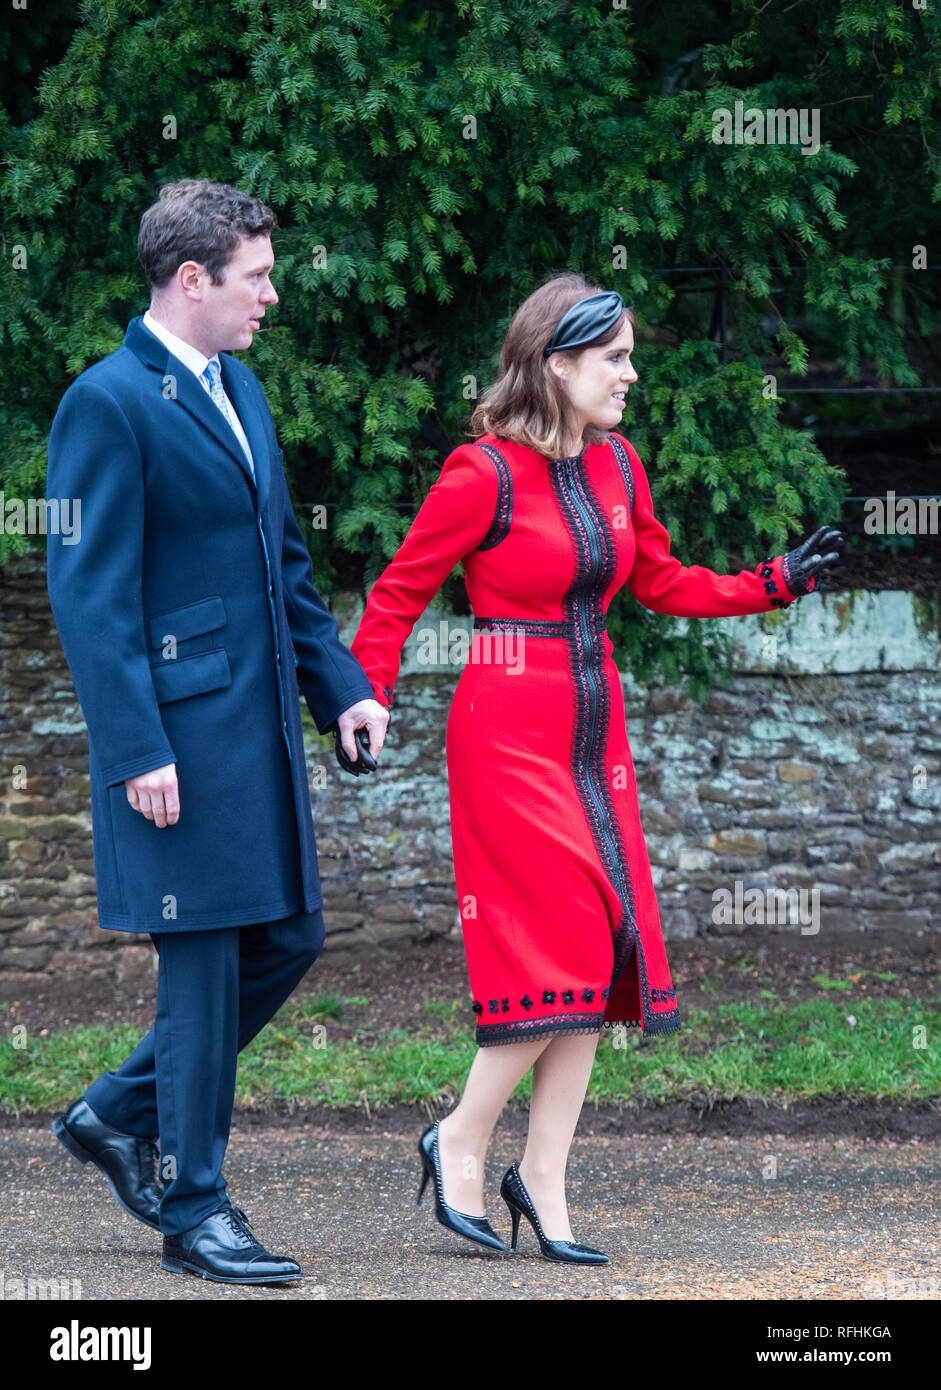 9a461b1c4dc3 ... attends the Christmas Day service at St. Mary Magdalene Church at  Sandringham Featuring: Jack Brooksbank, Princess Eugenie Where:  Sandringham, ...